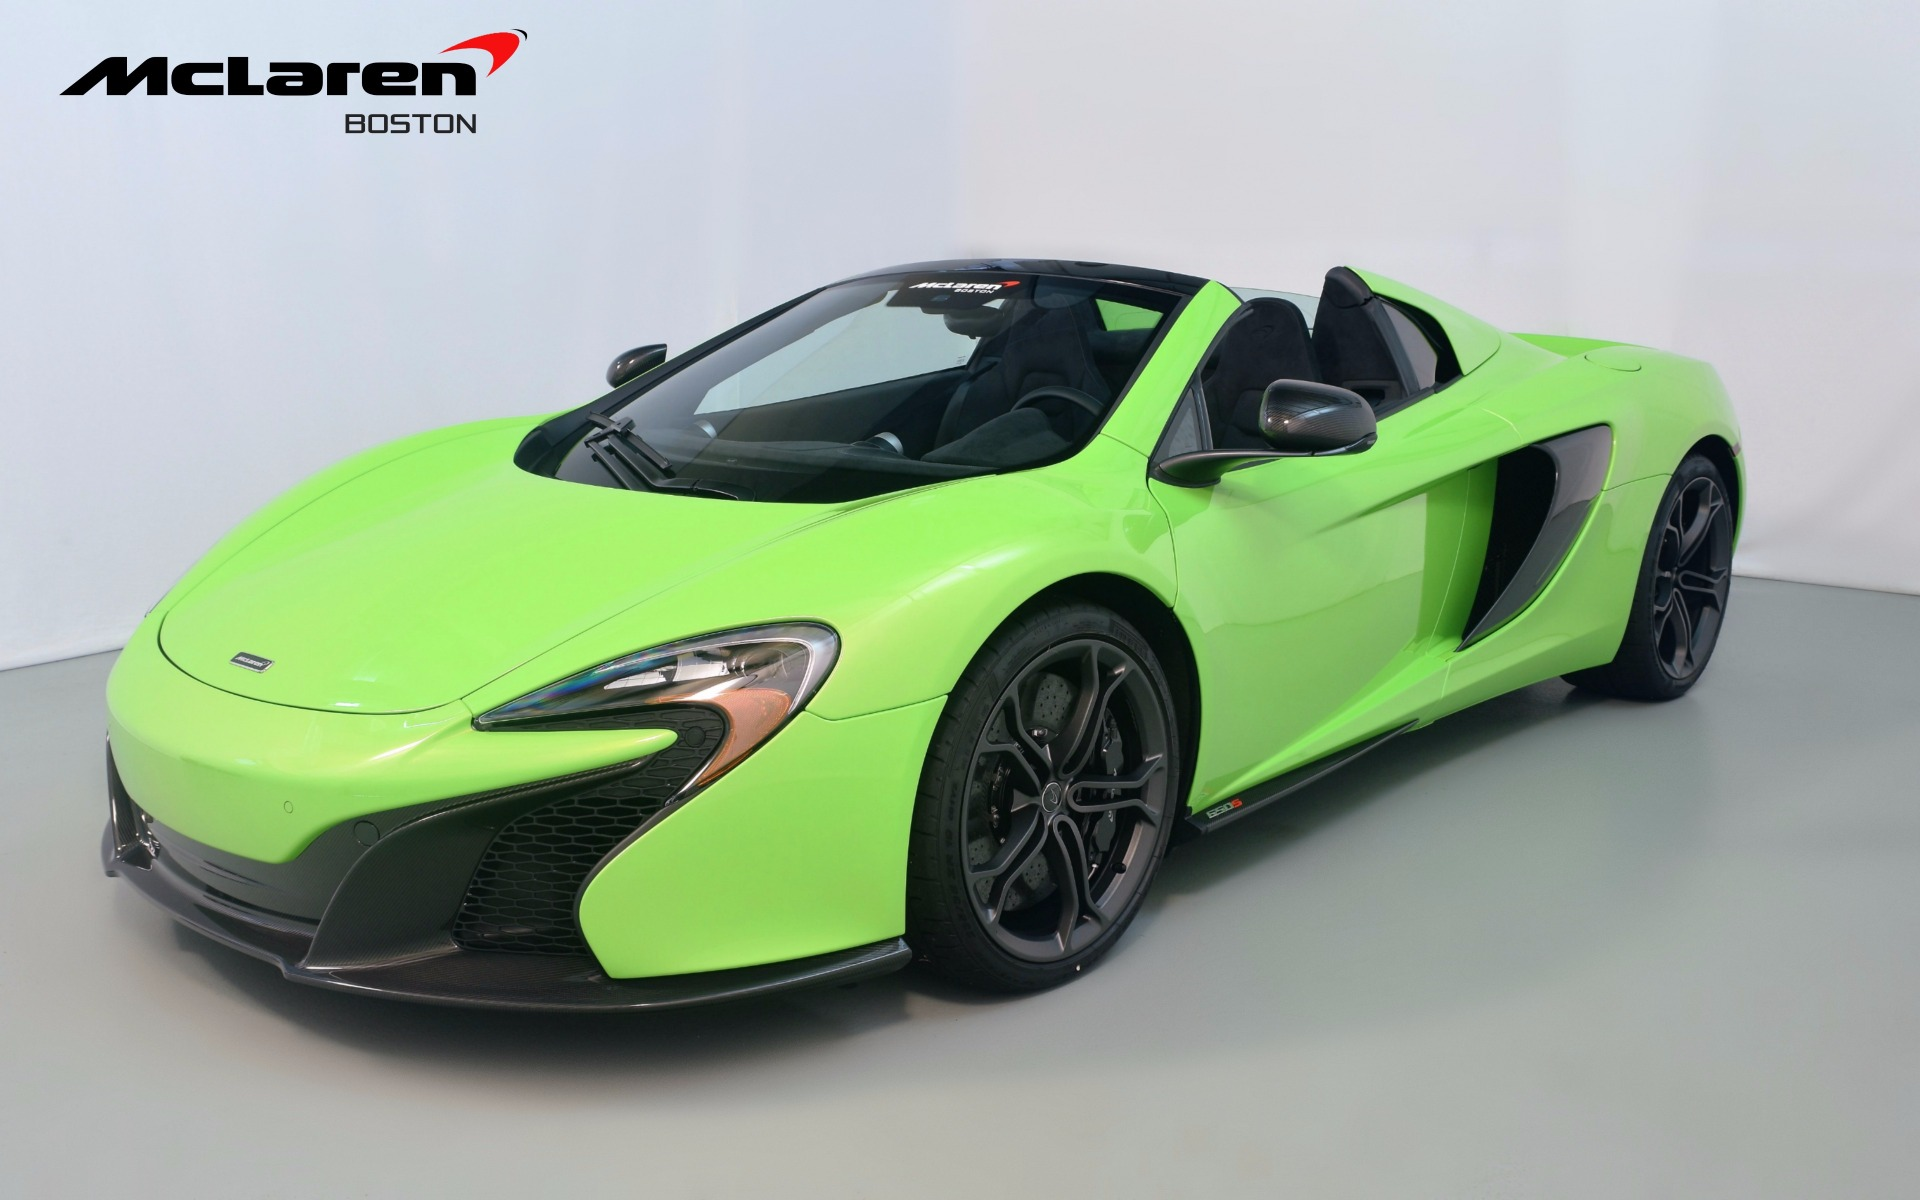 2016 mclaren 650s spider for sale in norwell ma 006069 mclaren boston. Black Bedroom Furniture Sets. Home Design Ideas